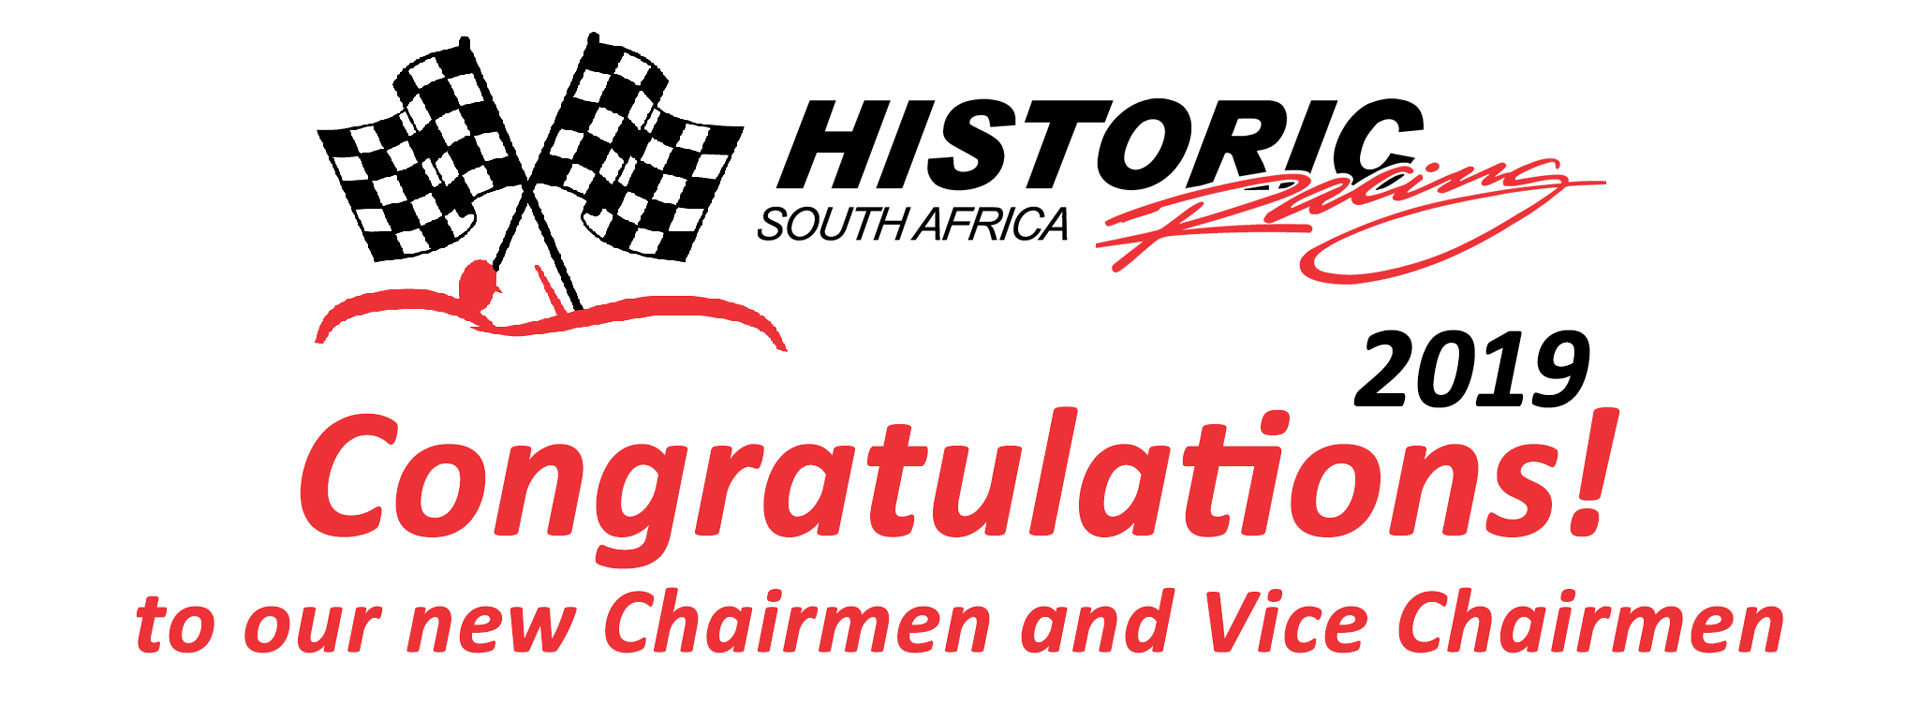 Congratulations to our new category chairmen and vice chairmen for 2019